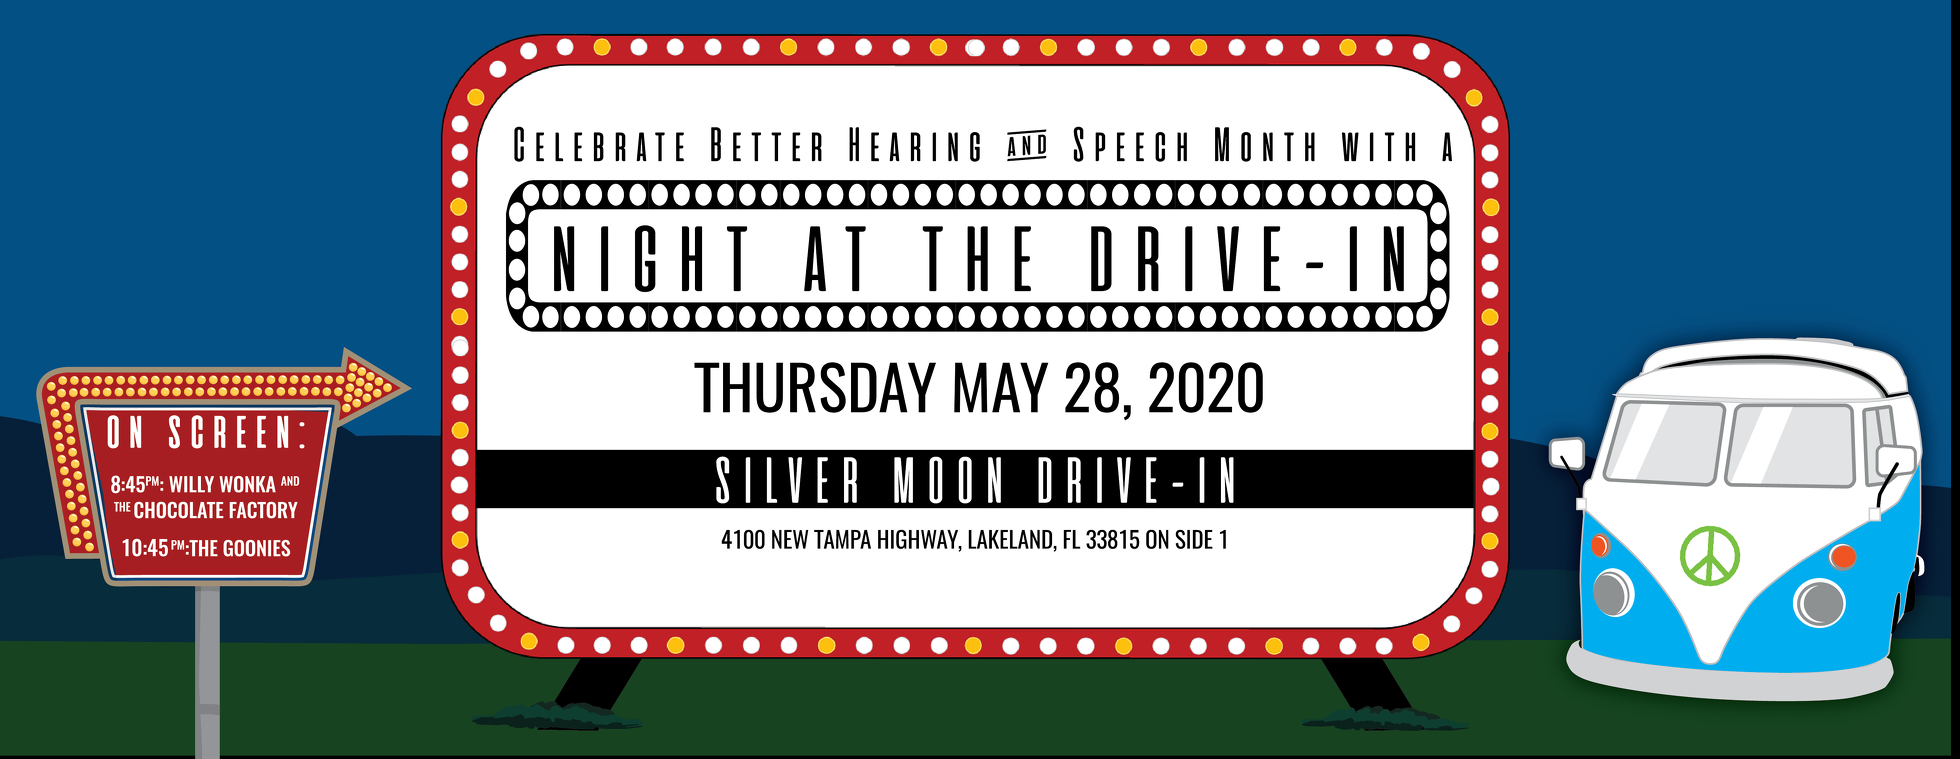 Celebrate Better Hearing & Speech Month at the Drive-In!